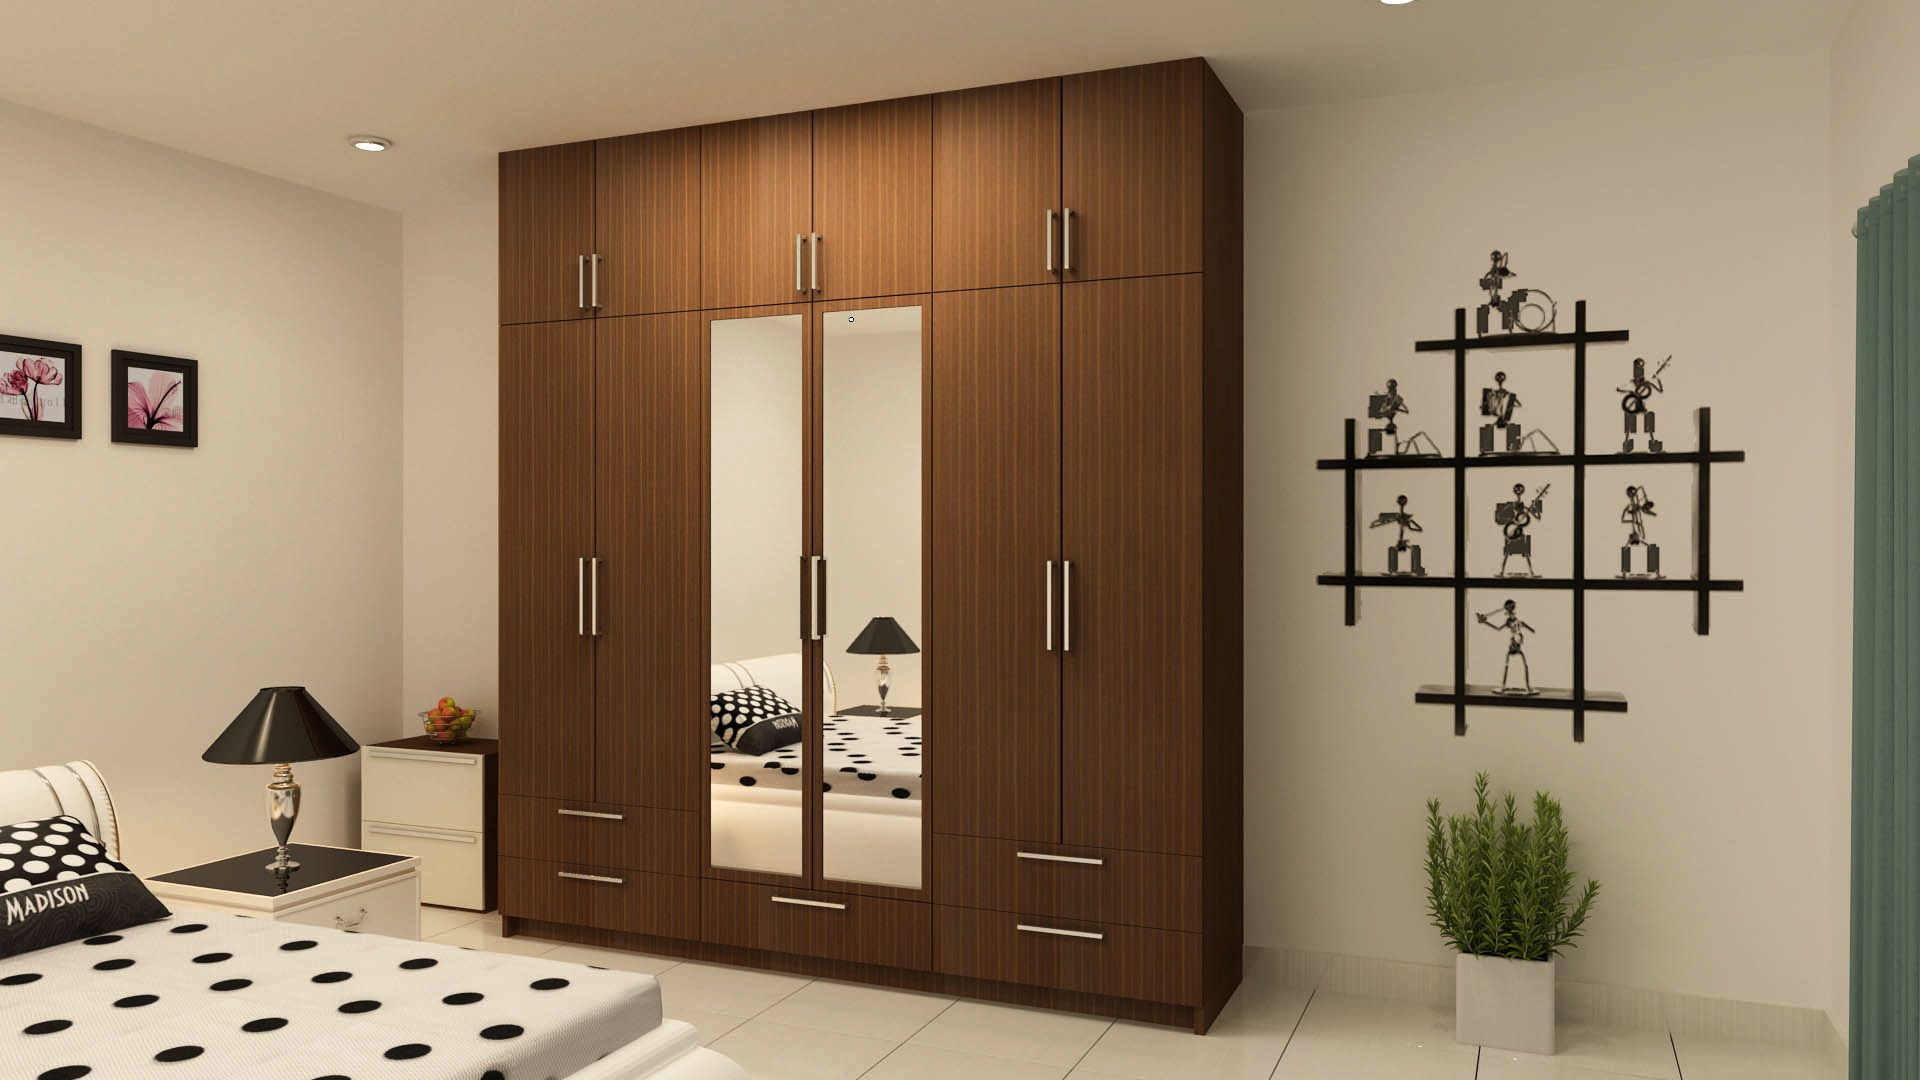 Stylish Modern Wardrobe Designs For Bedroom Wardrobe Design Bedroom Bedroom Closet Design Wadrobe Design